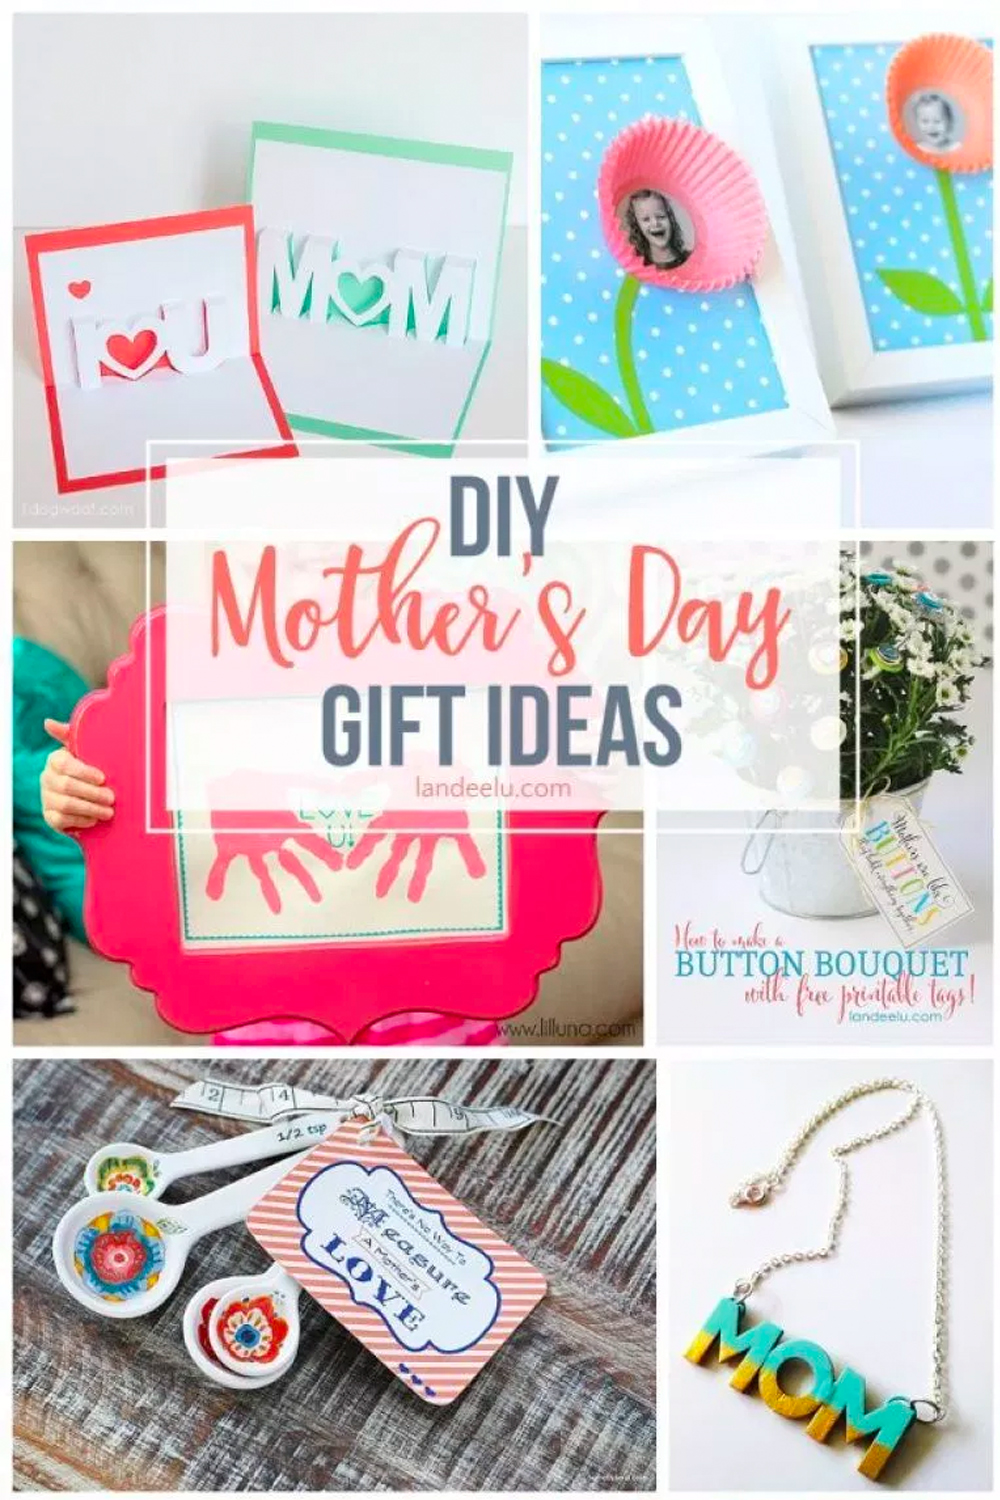 Awesome Diy Mother's Day Gifts Diy Mothers Day Gift Ideas Landeelu